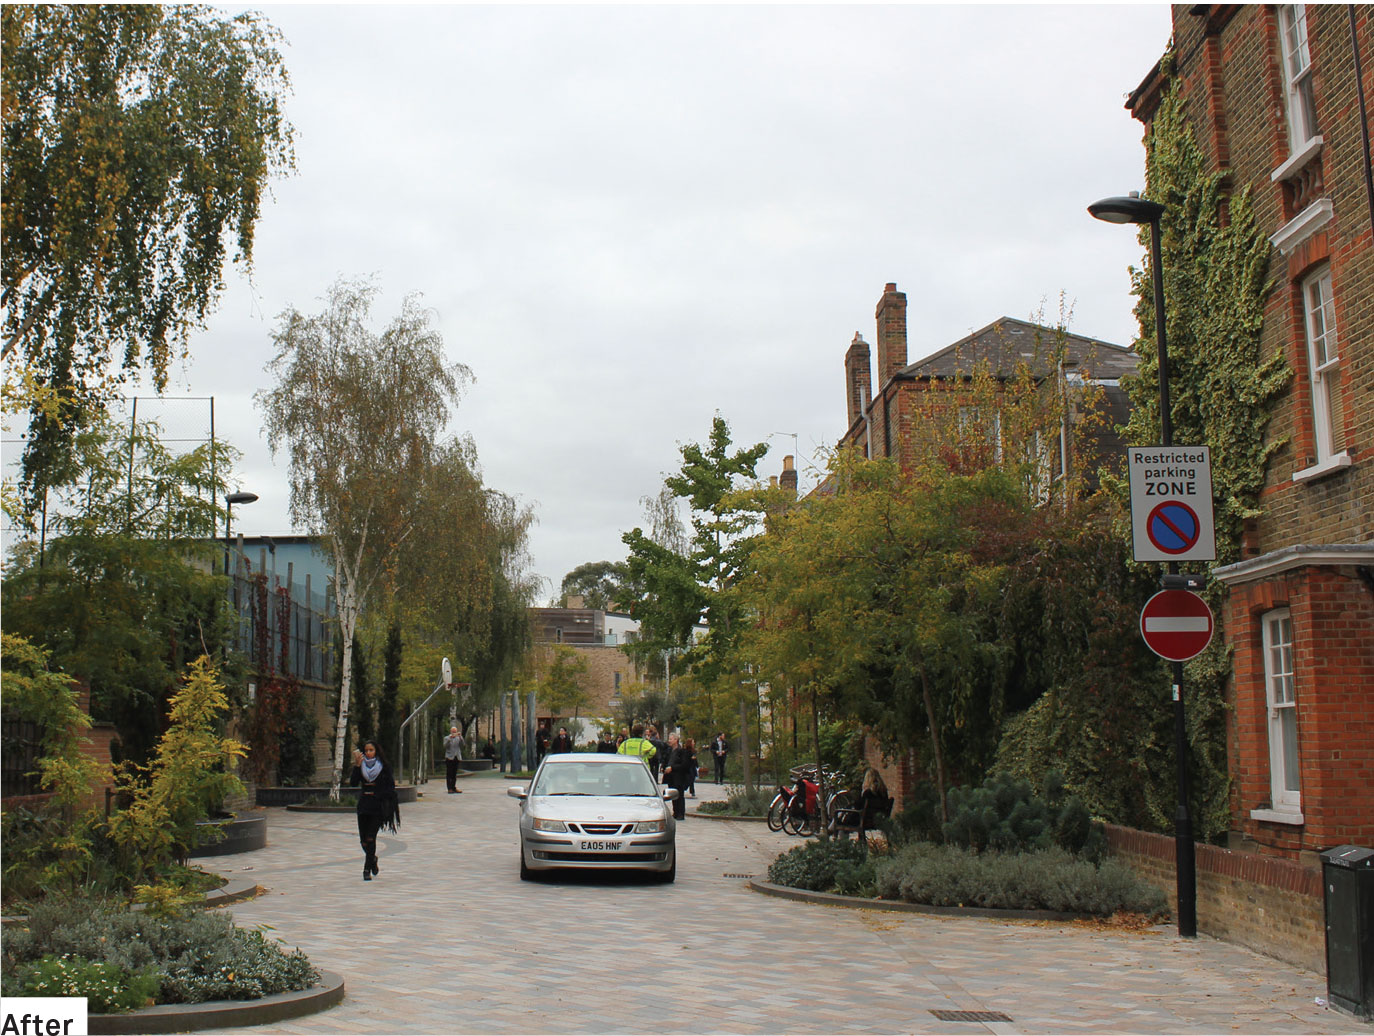 Residential Shared Streets | Global Designing Cities ...